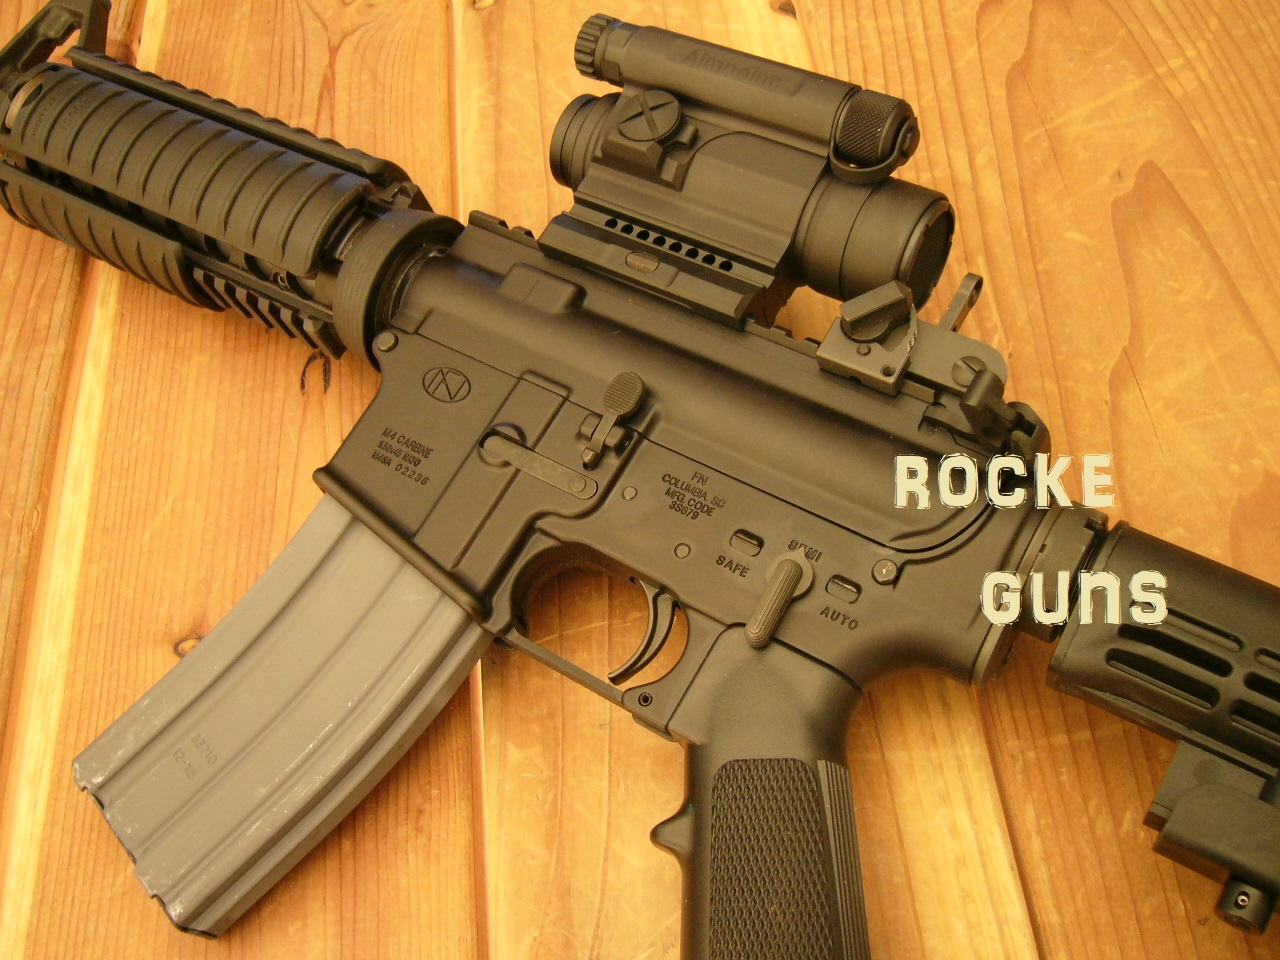 military issue m4 carbine package civilian legal rocke guns